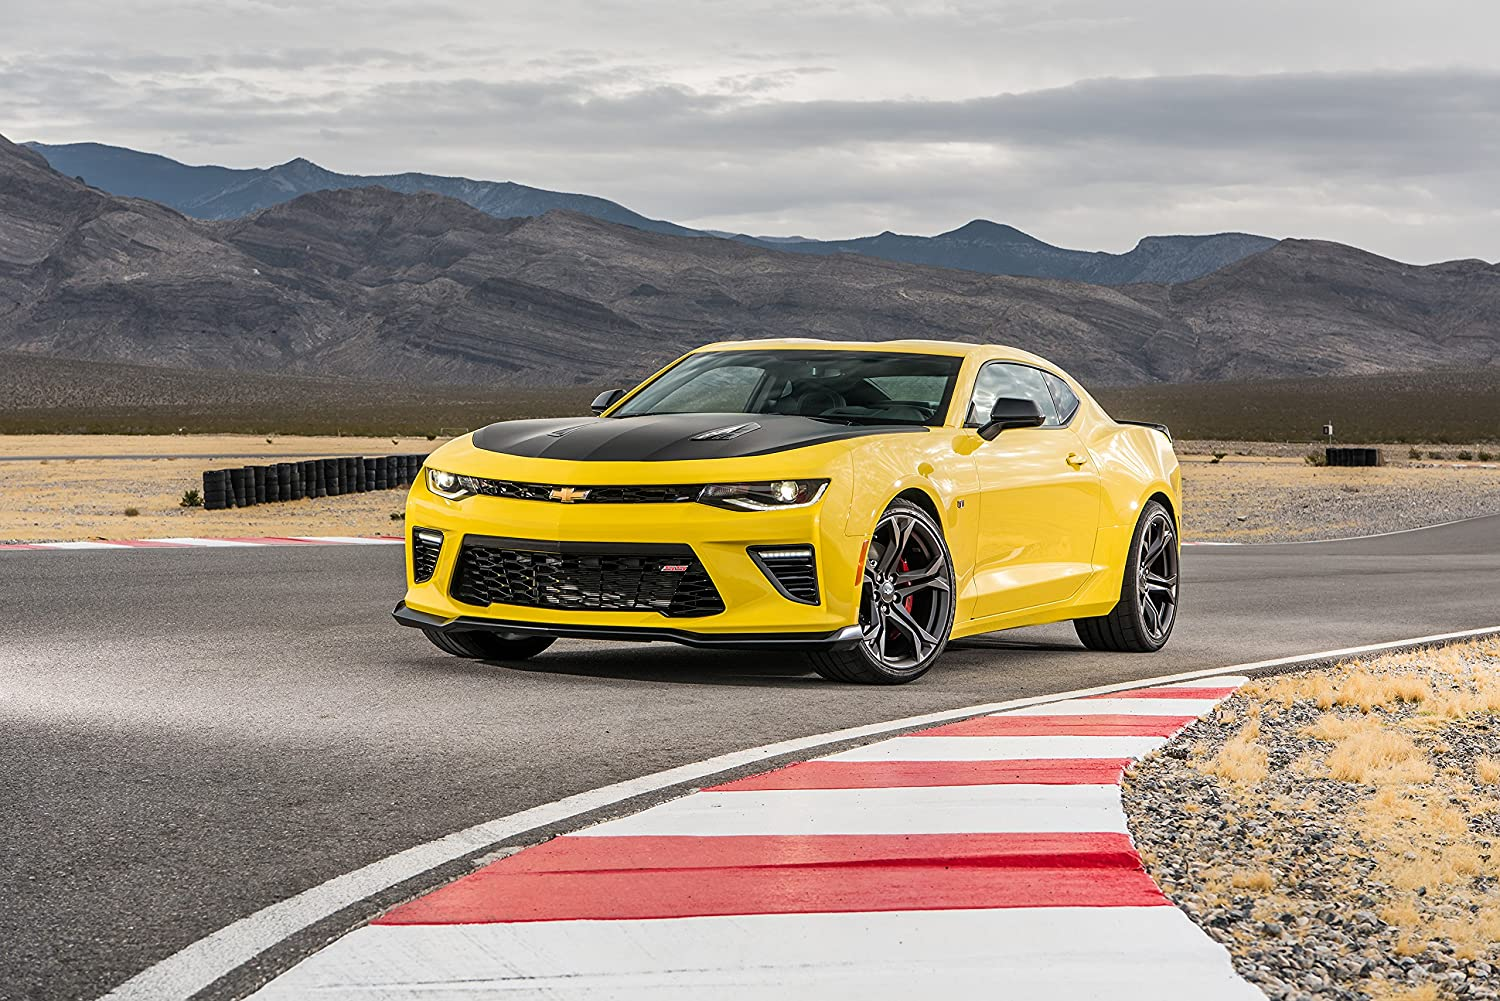 amazon com chevrolet camaro ss 1le 2017 car print on 10 mil archival satin paper yellow front side static view 24 x36 posters prints chevrolet camaro ss 1le 2017 car print on 10 mil archival satin paper yellow front side static view 24 x36